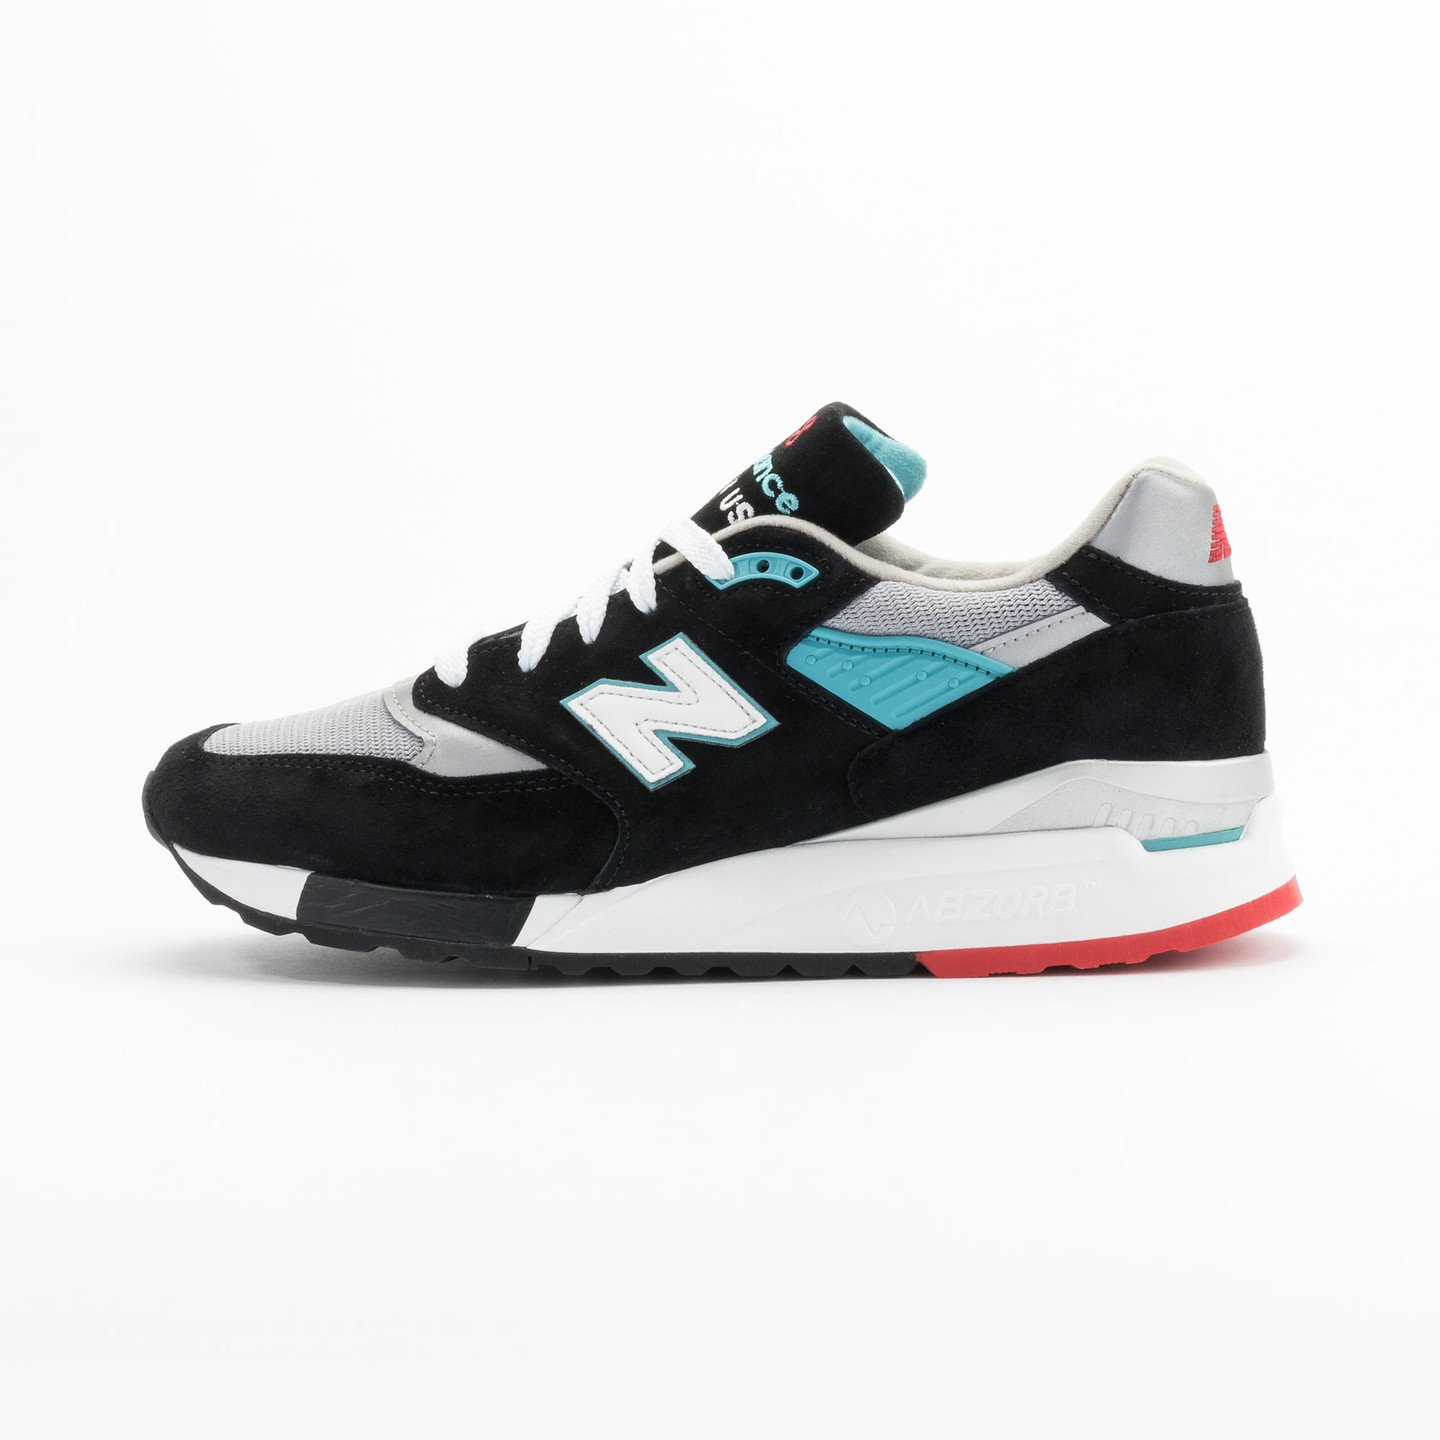 New Balance M998 CBB - Made in USA Black / Grey / Turquoise M998CBB-42.5